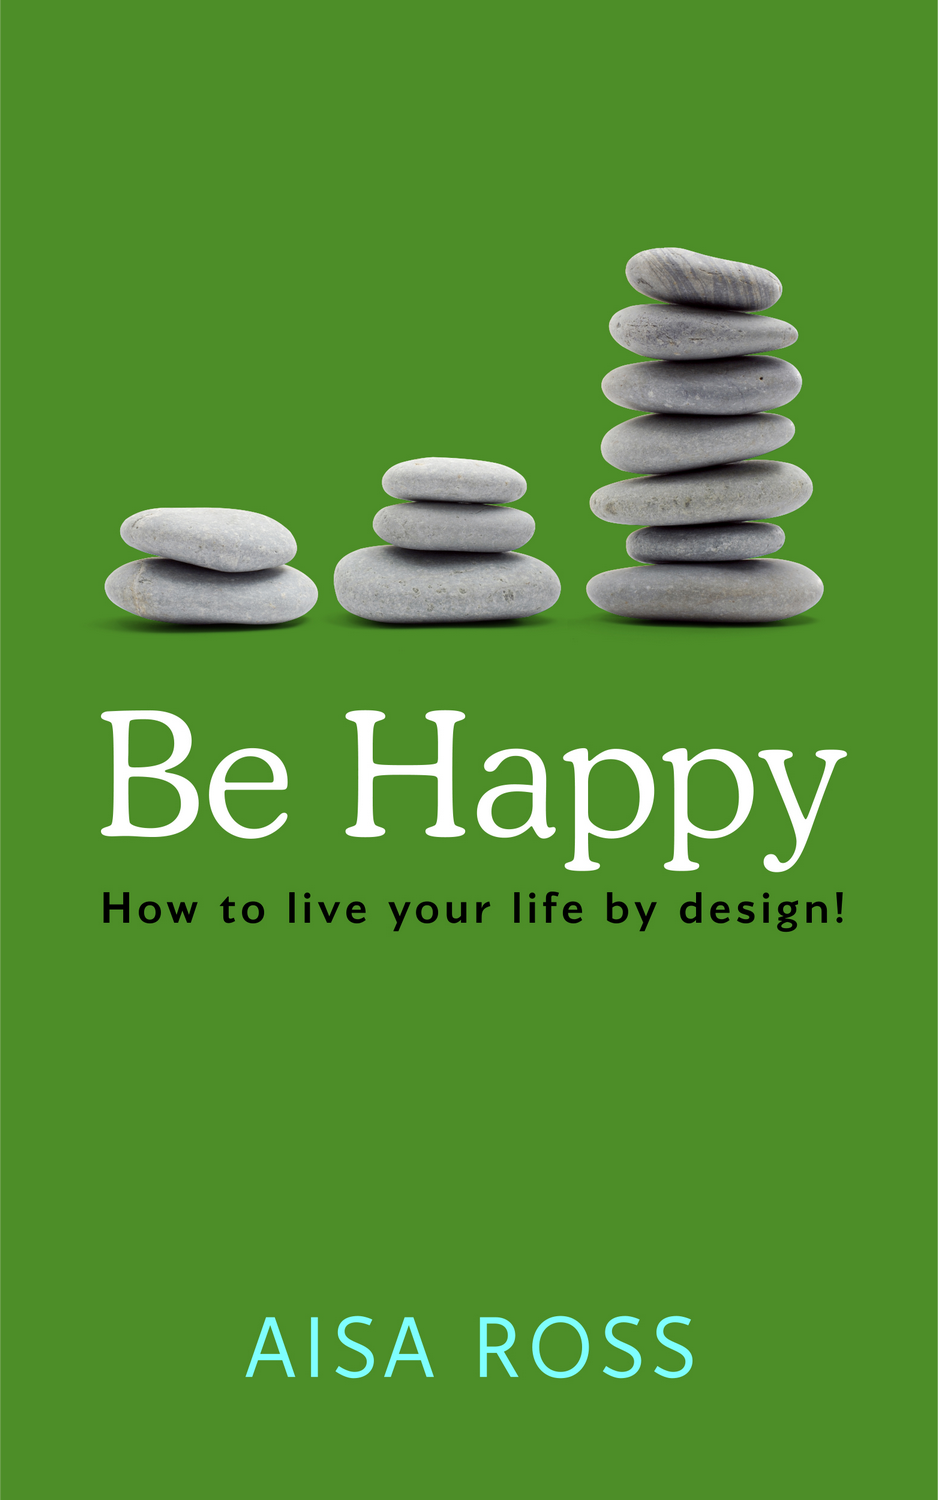 Be Happy - kindle ebook by Aisa Ross | Goodkindles - Good kindle